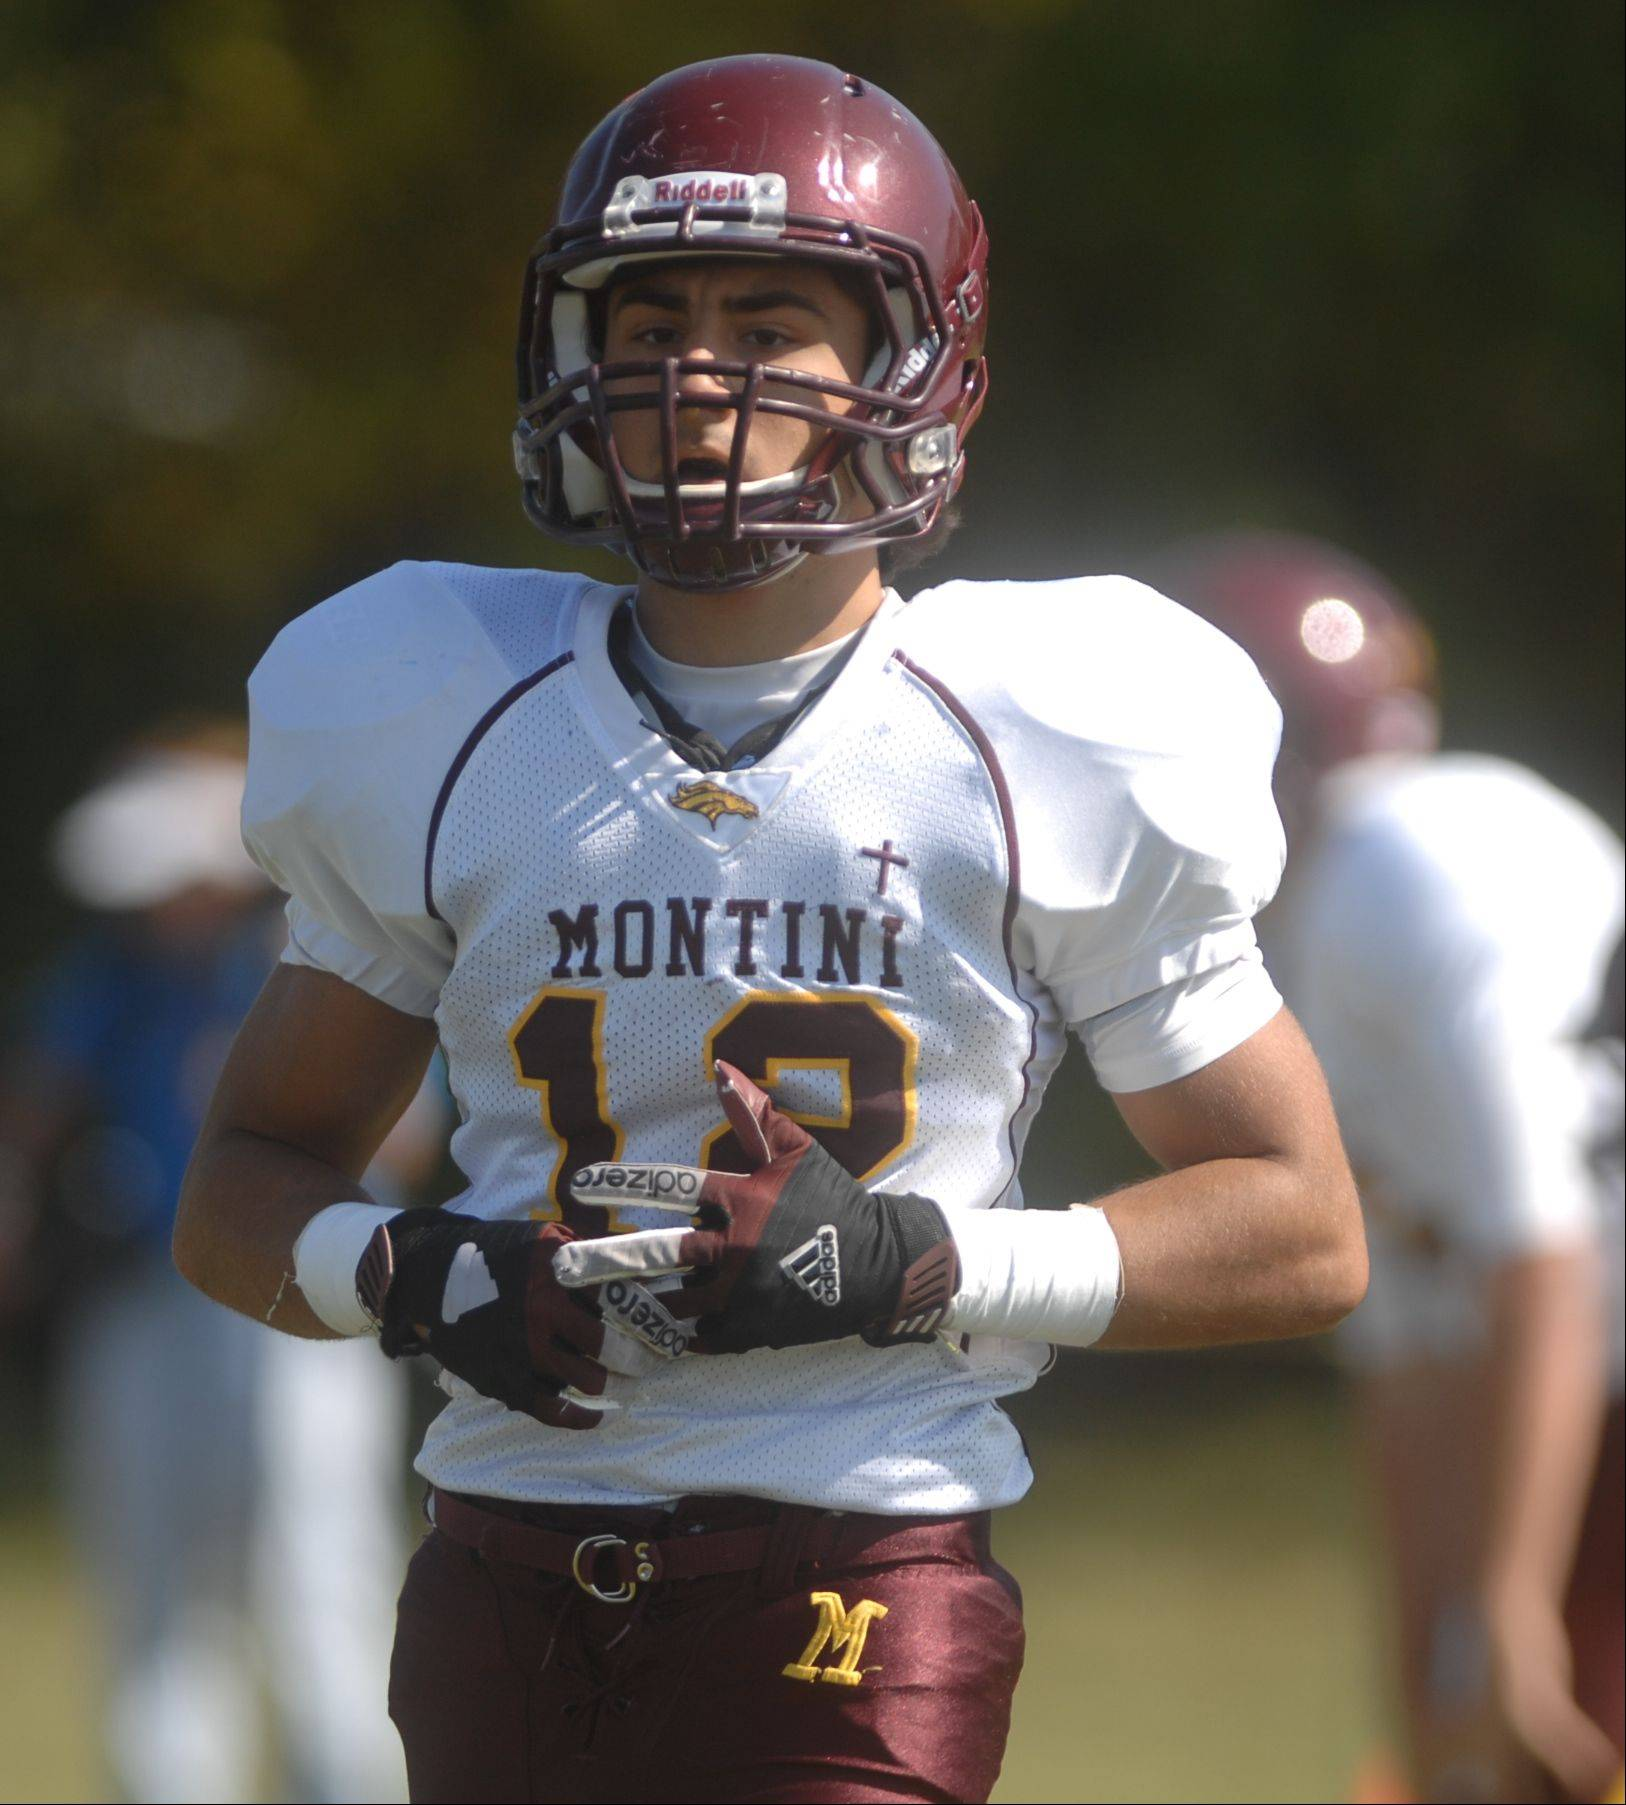 Photos from the Montini at Immaculate Conception football game Saturday, September 29.